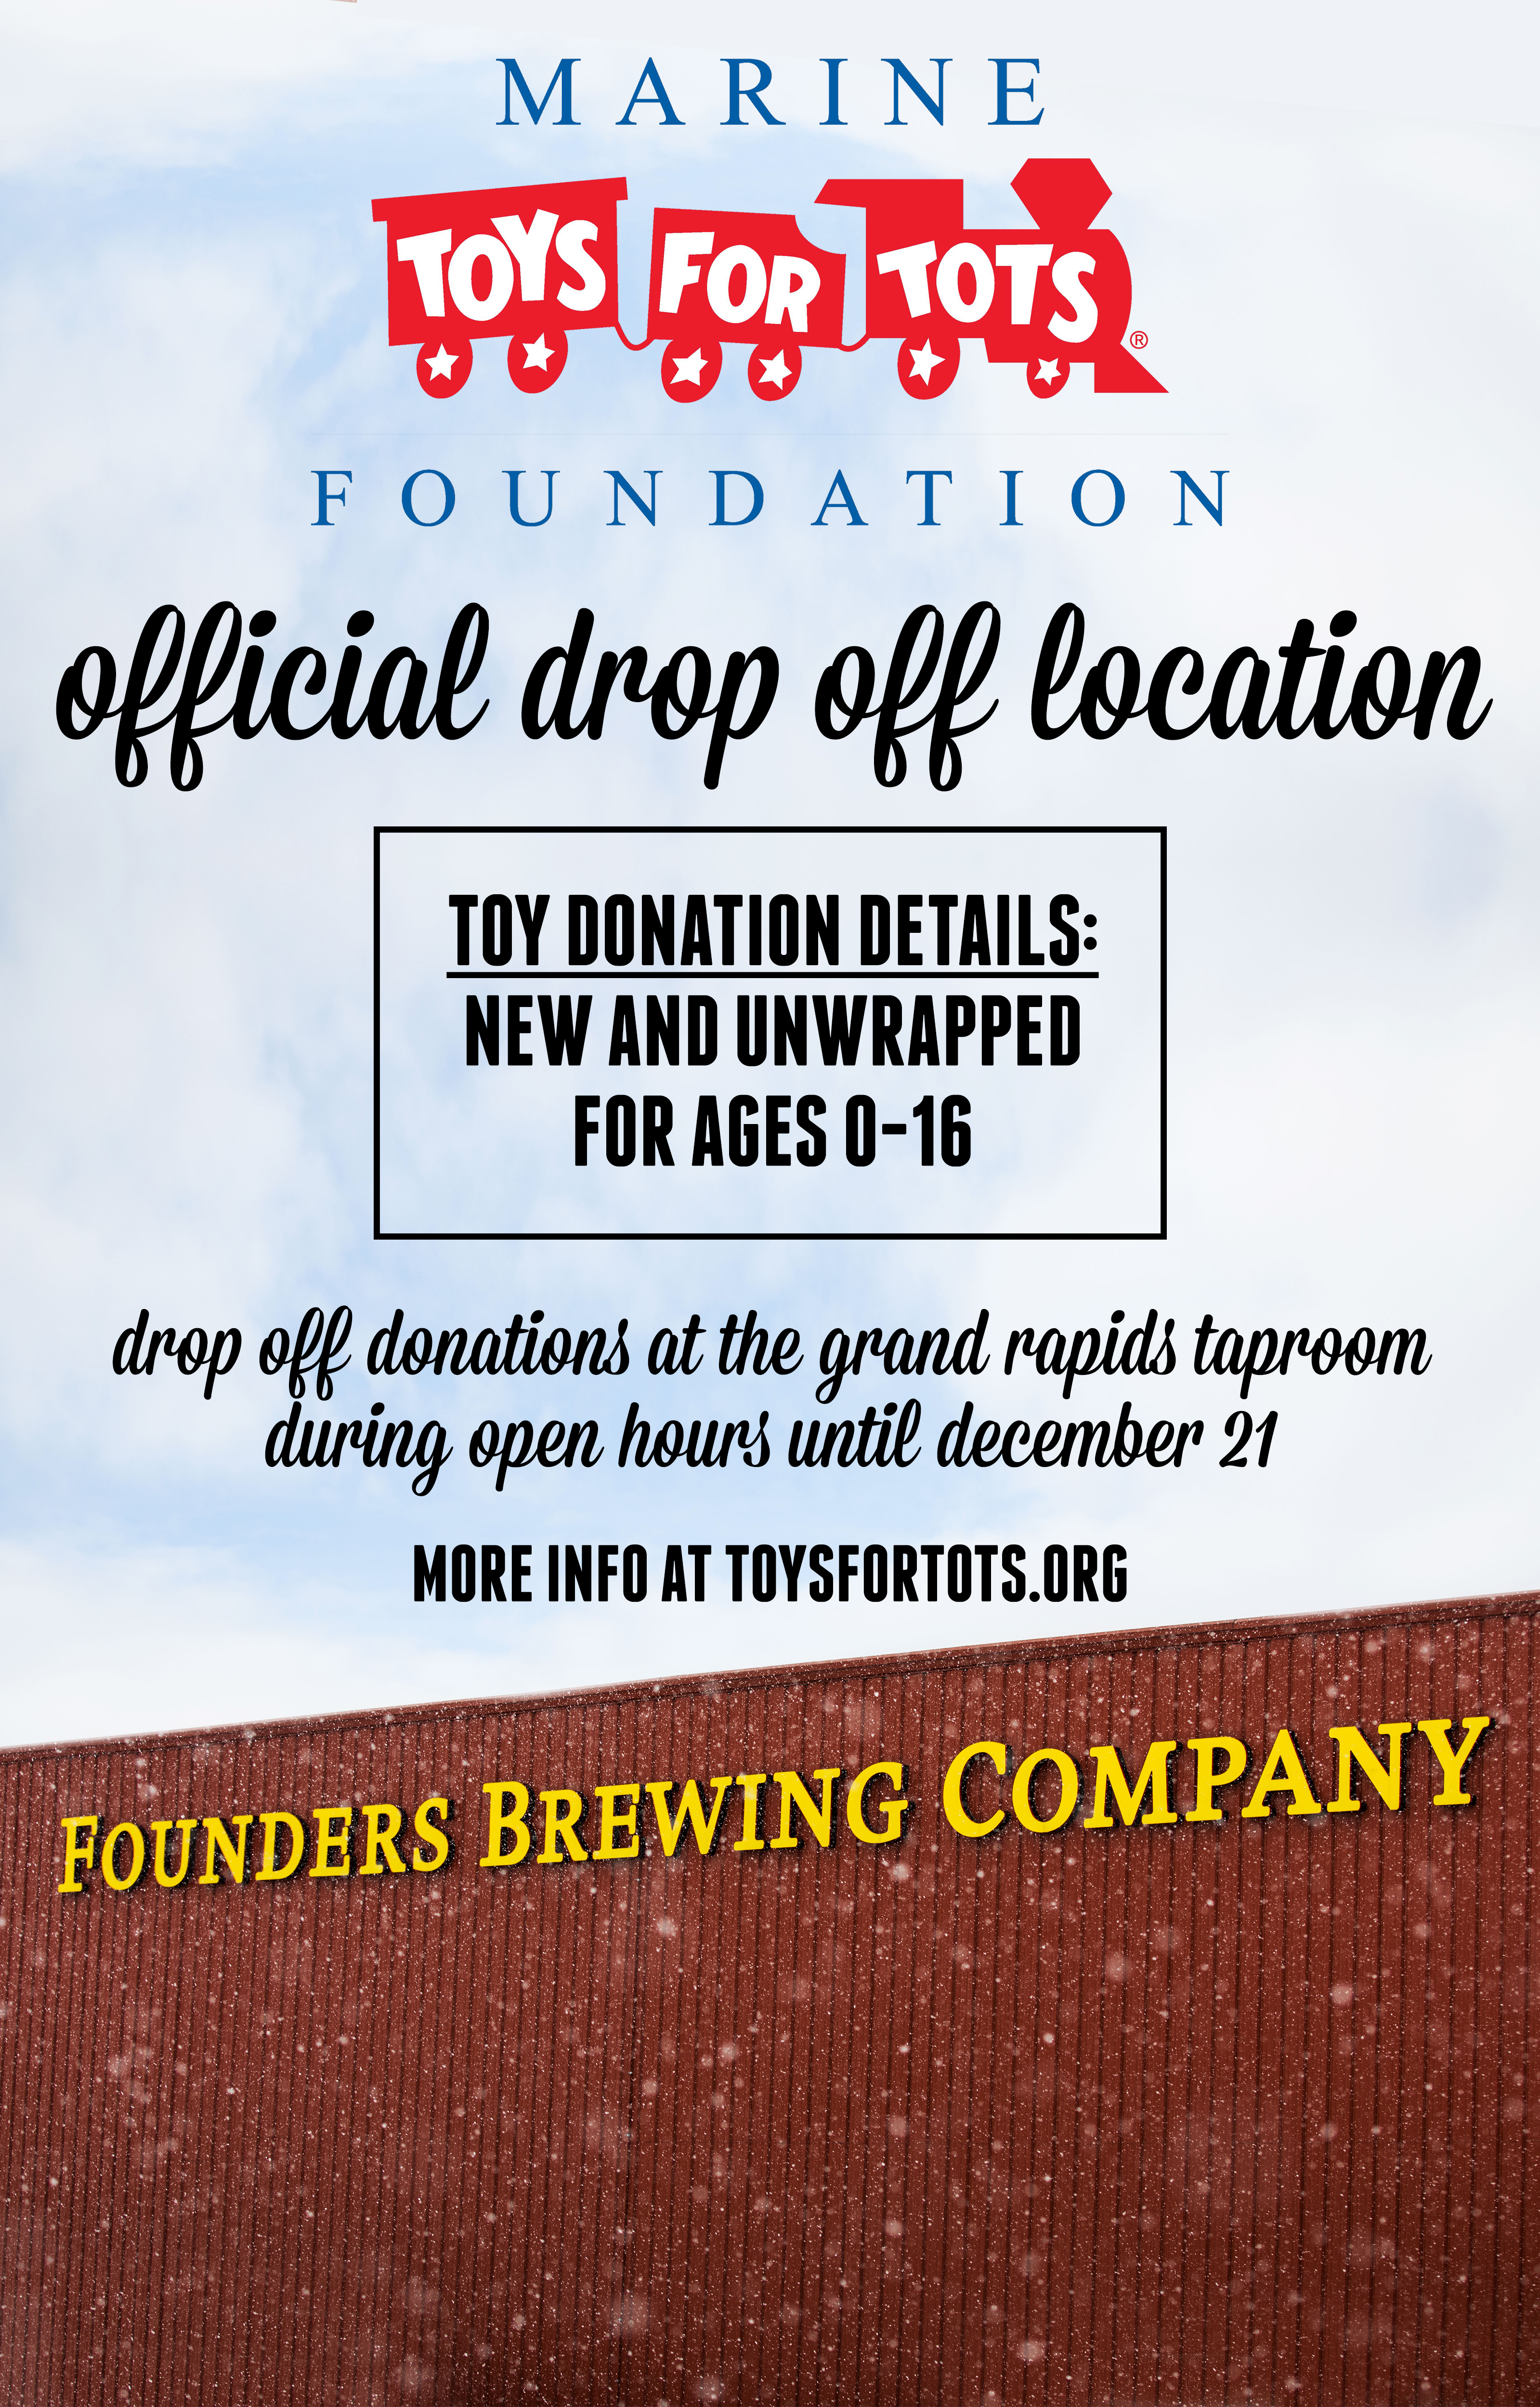 Toys for Tots Official Drop Off Location announcement poster